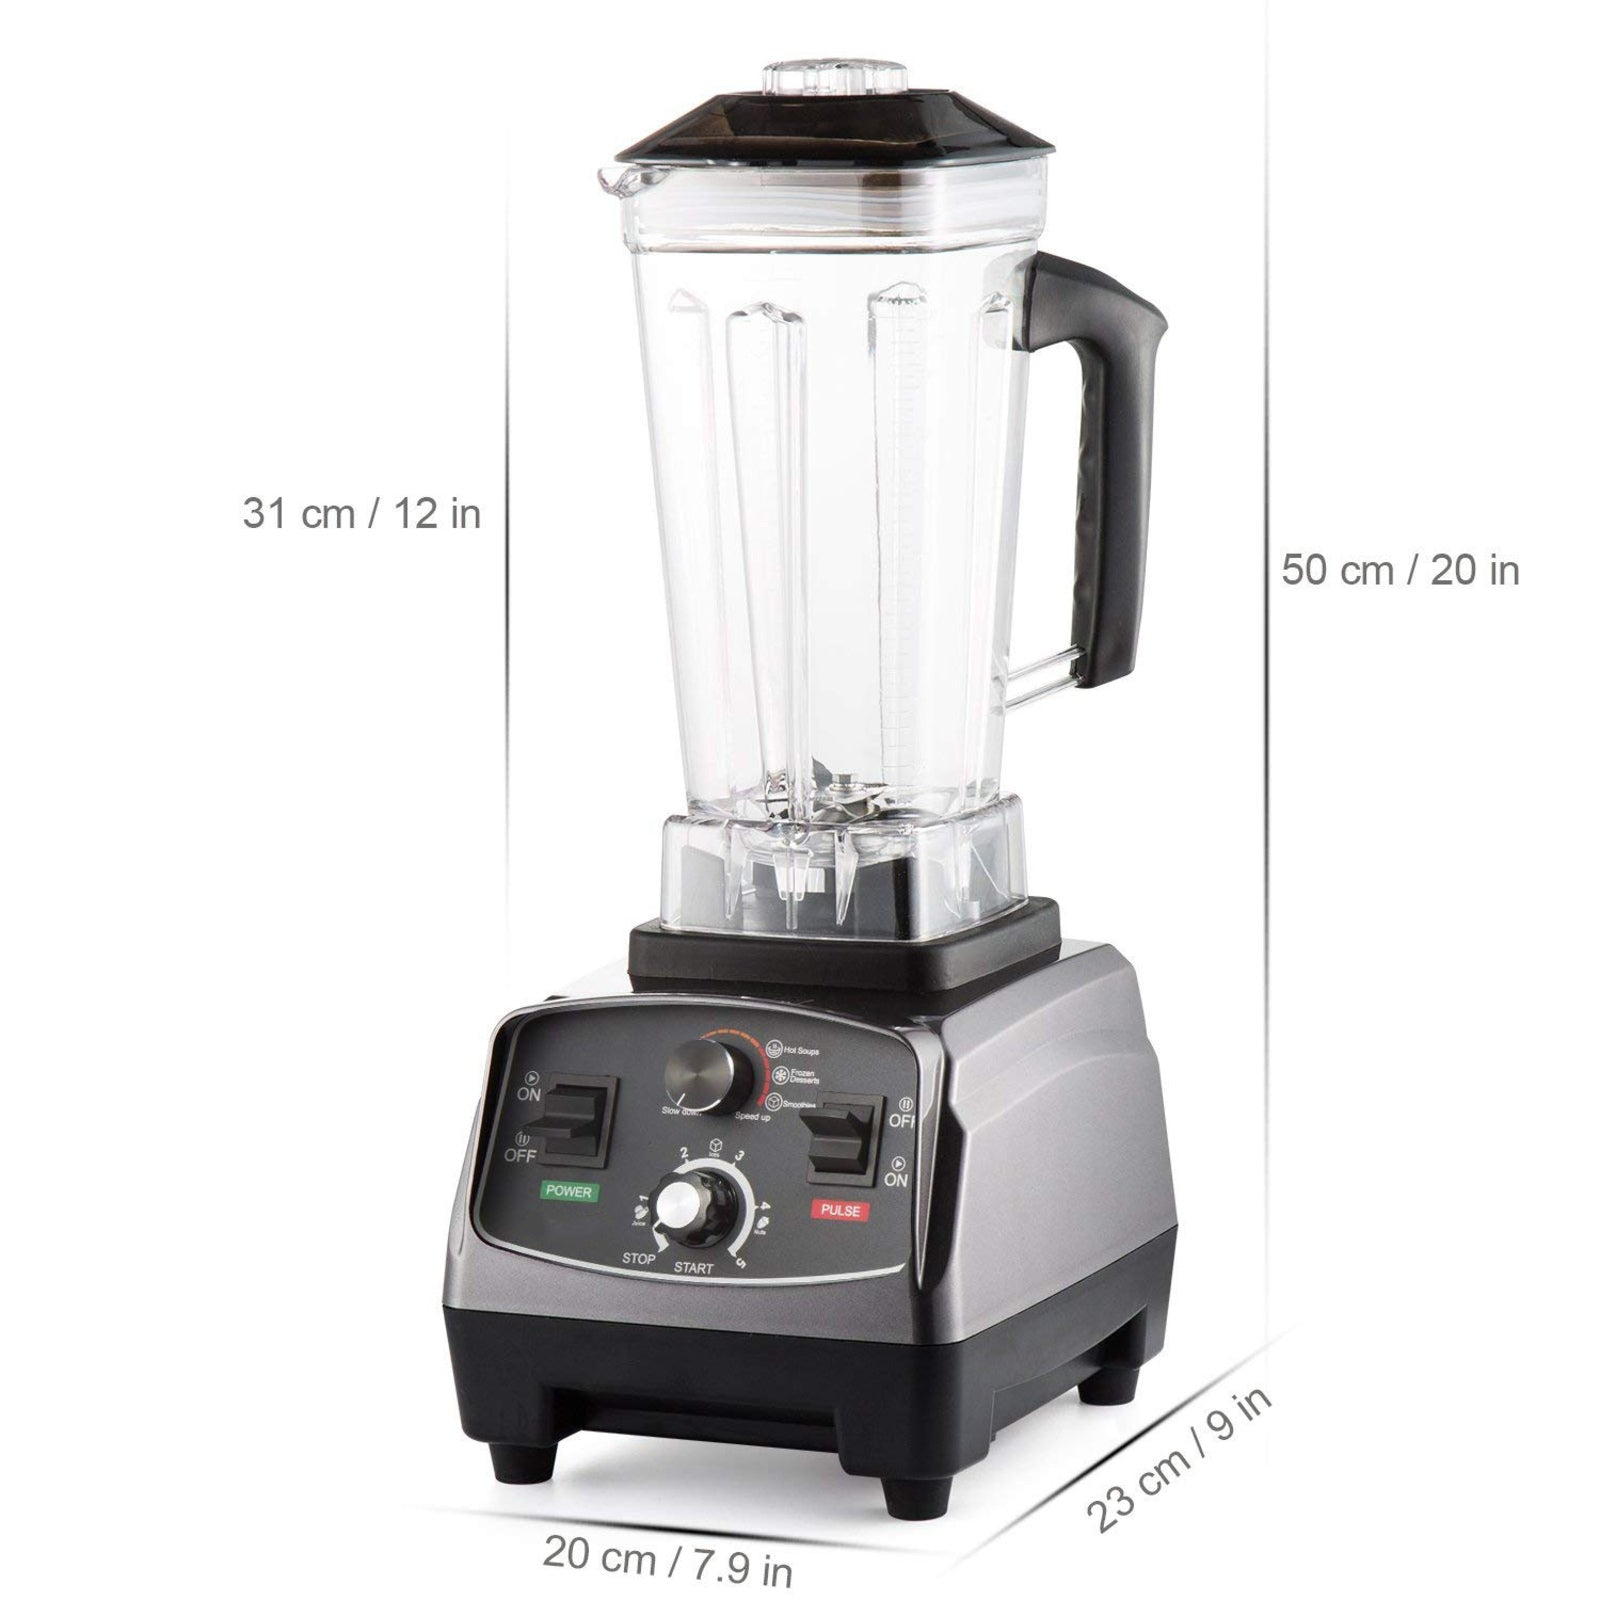 D&A HEALTH - ULTIMATE TURBO BLENDER - 2,200W & 2,000ML JUG